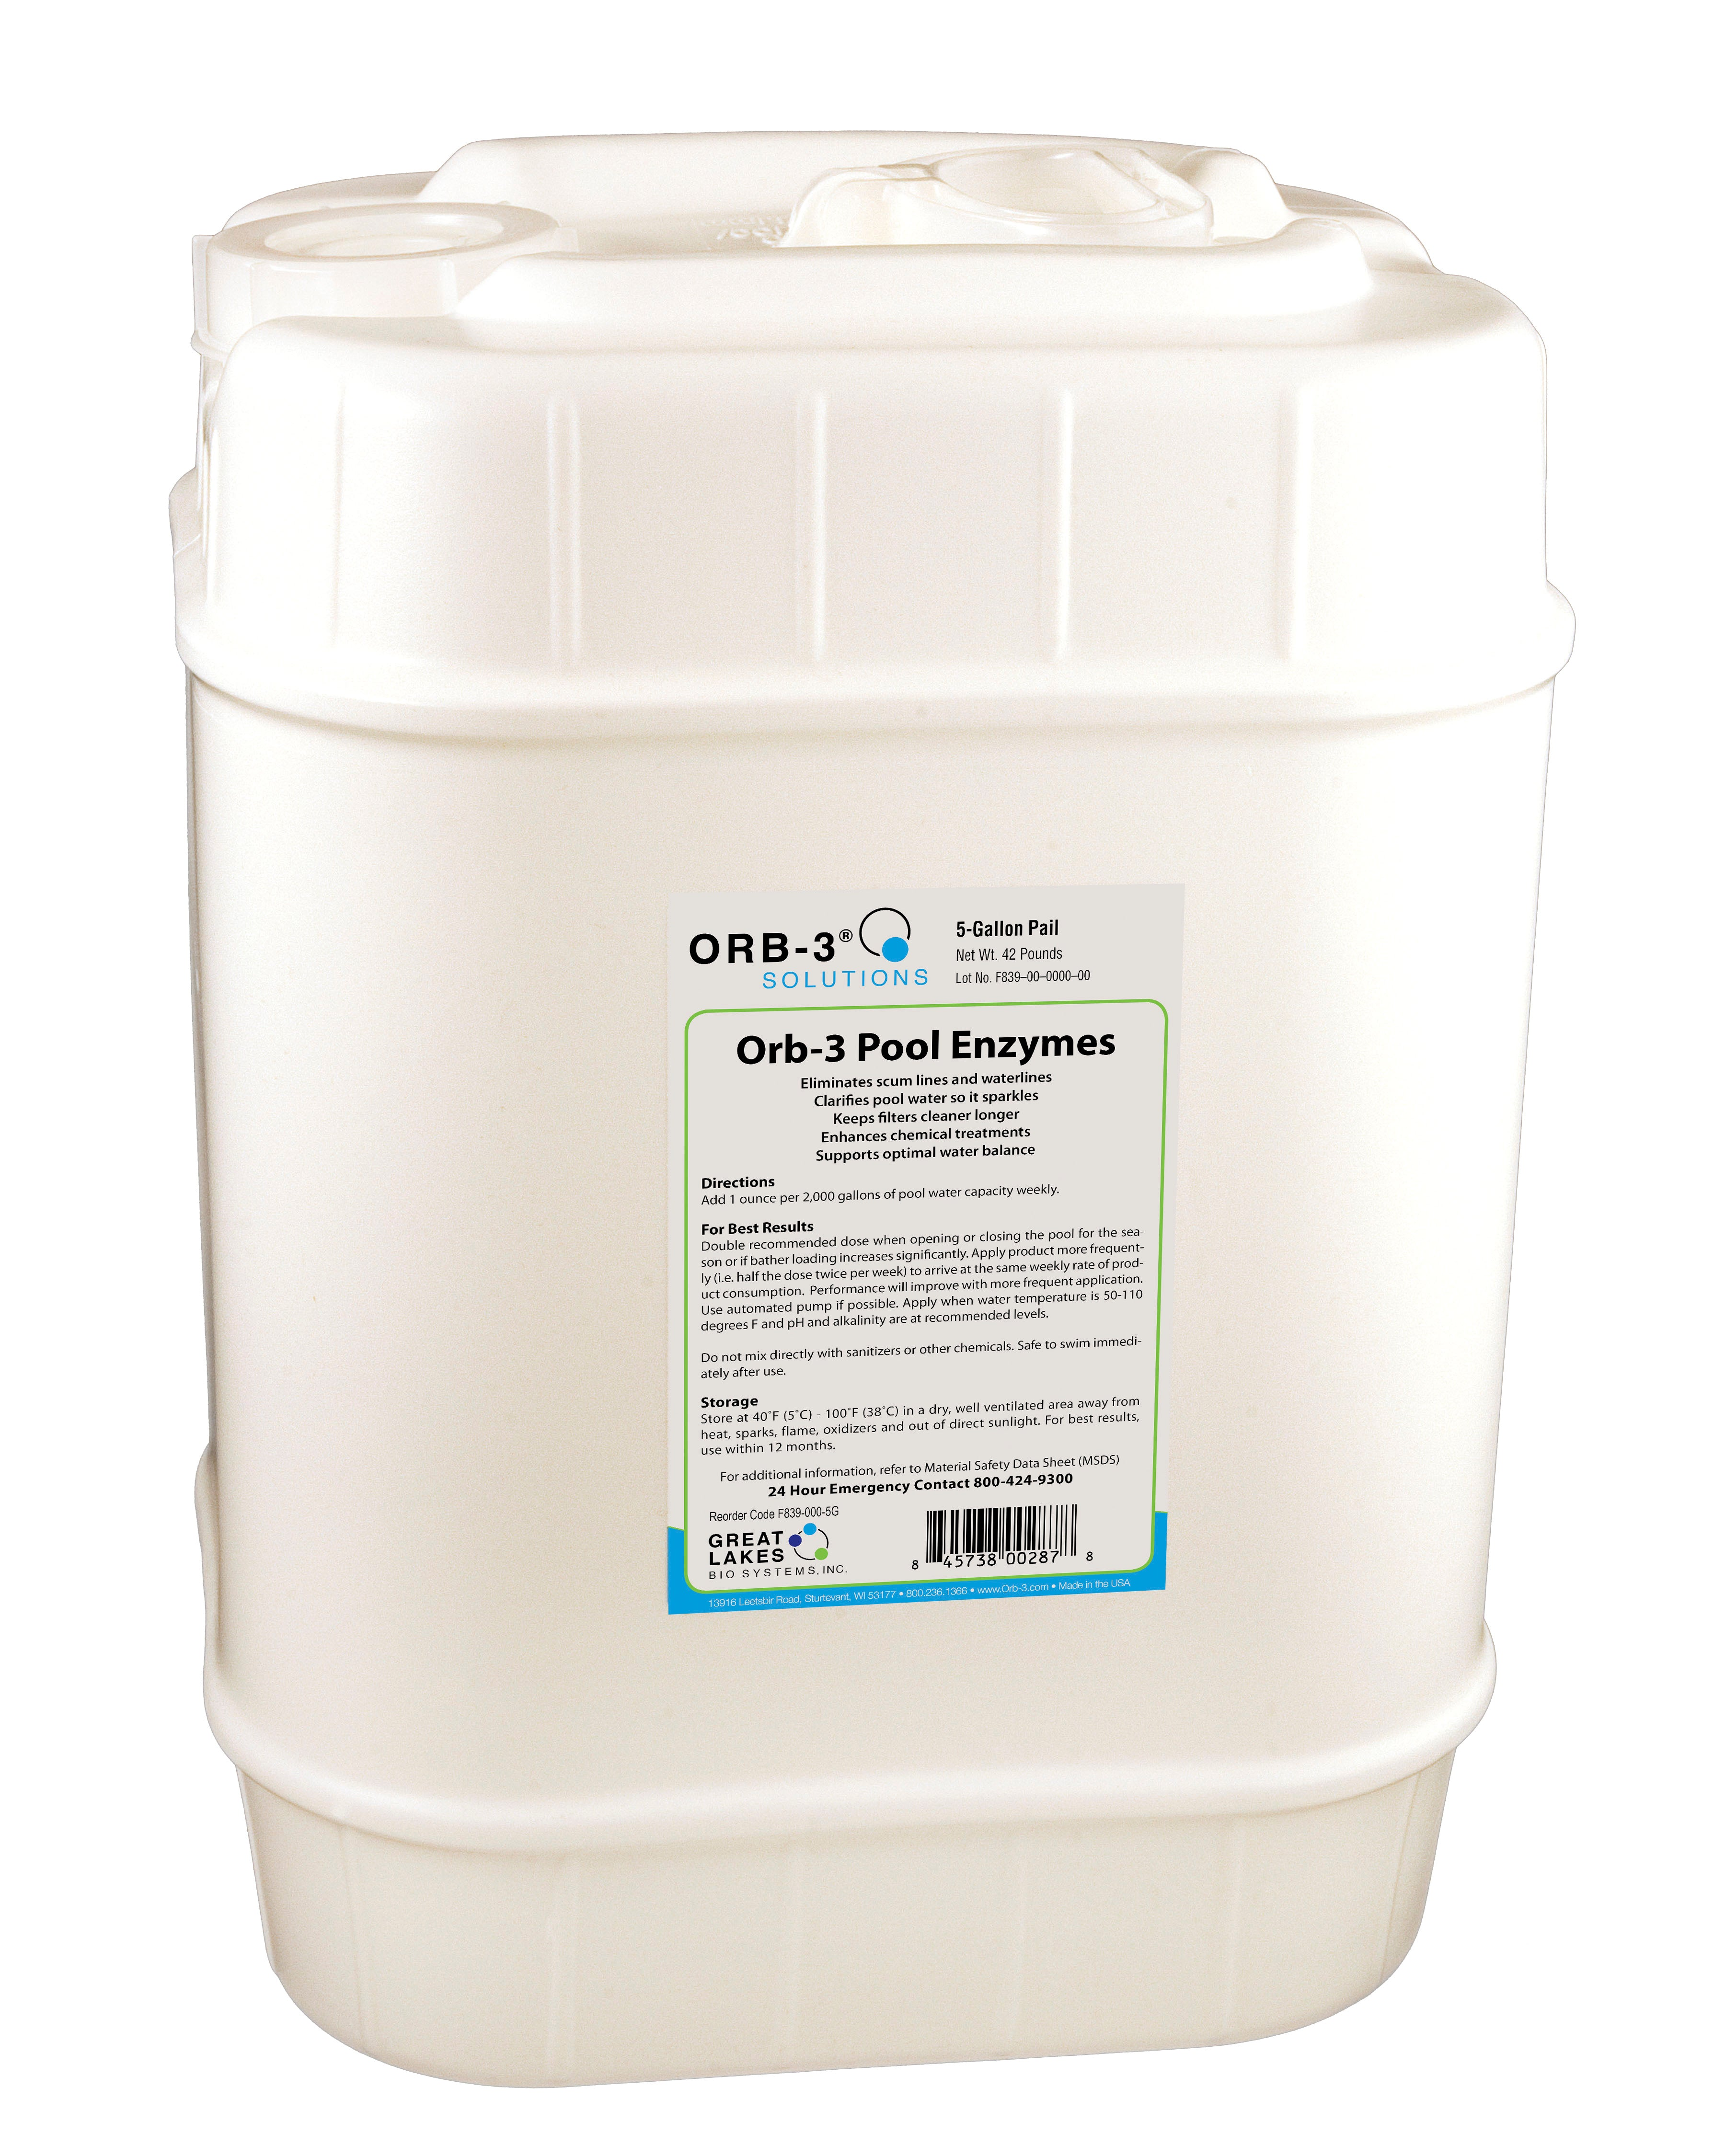 Orb 3 Pool Enzymes Cleanses Water And Reduces Chemicals Great